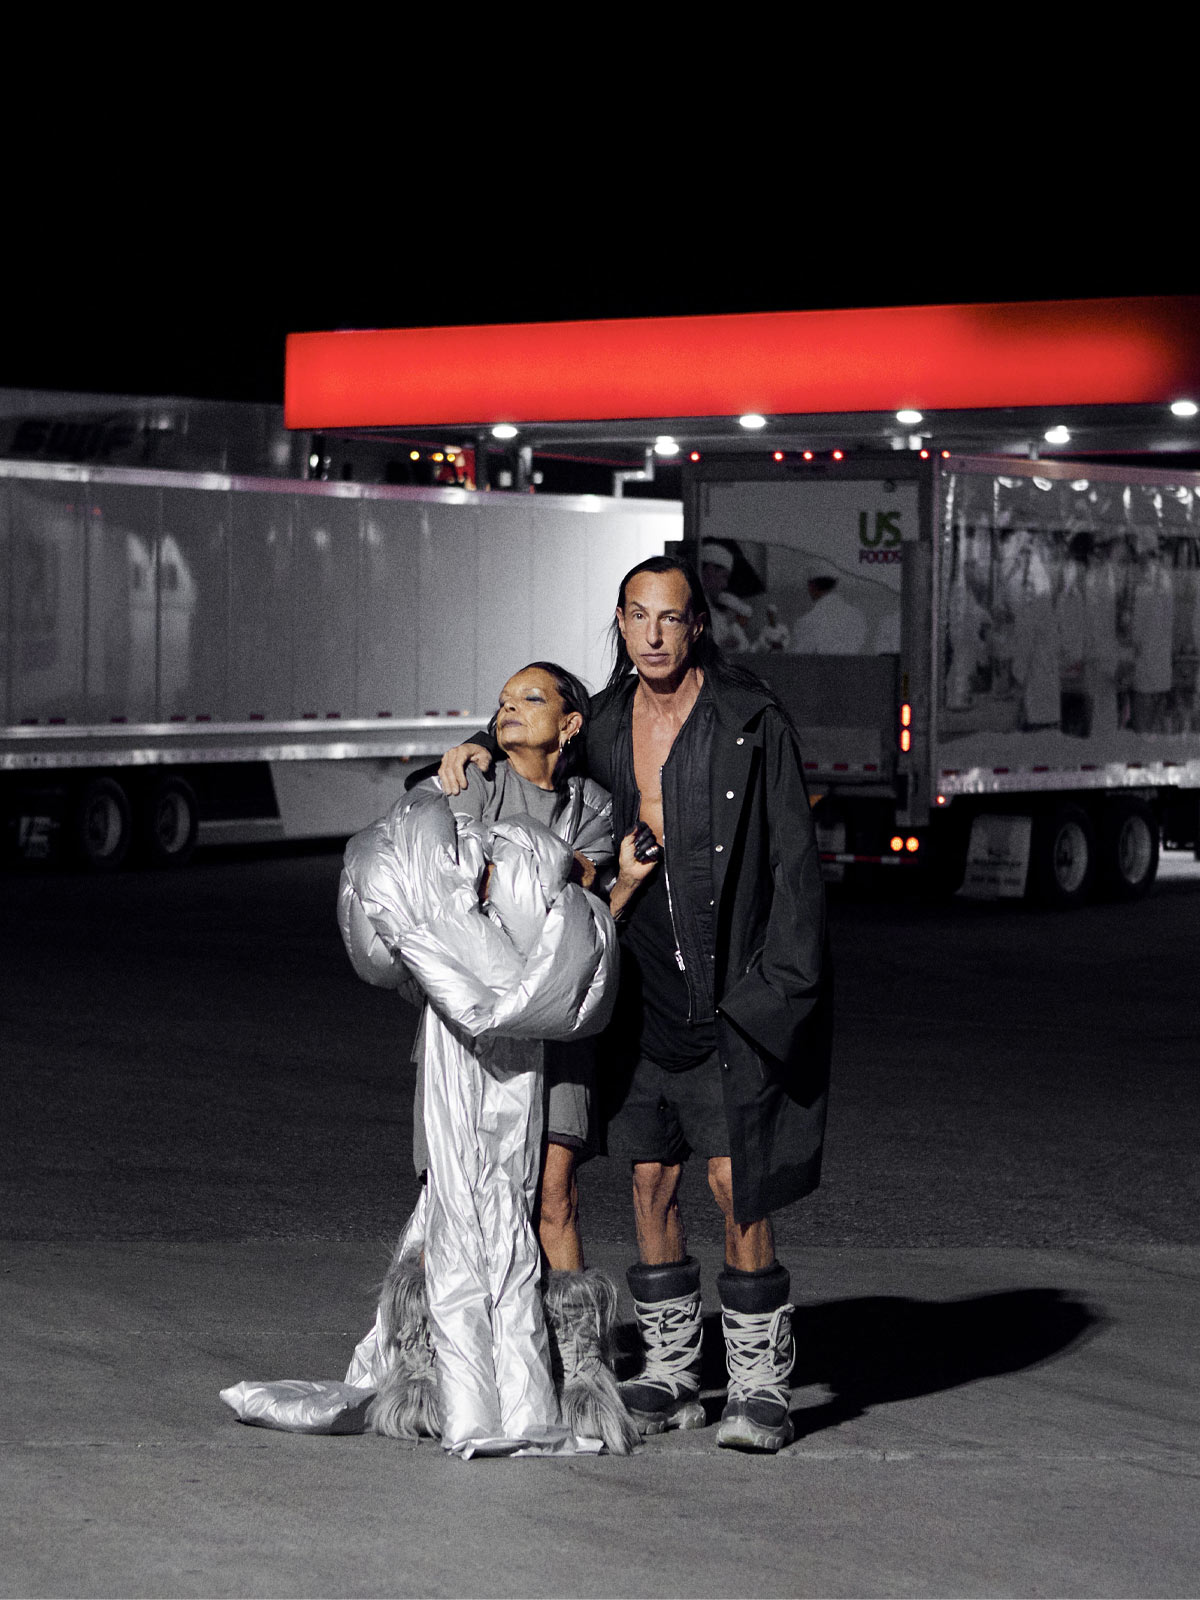 Rick Owens collaborated with Moncler on… a tour bus